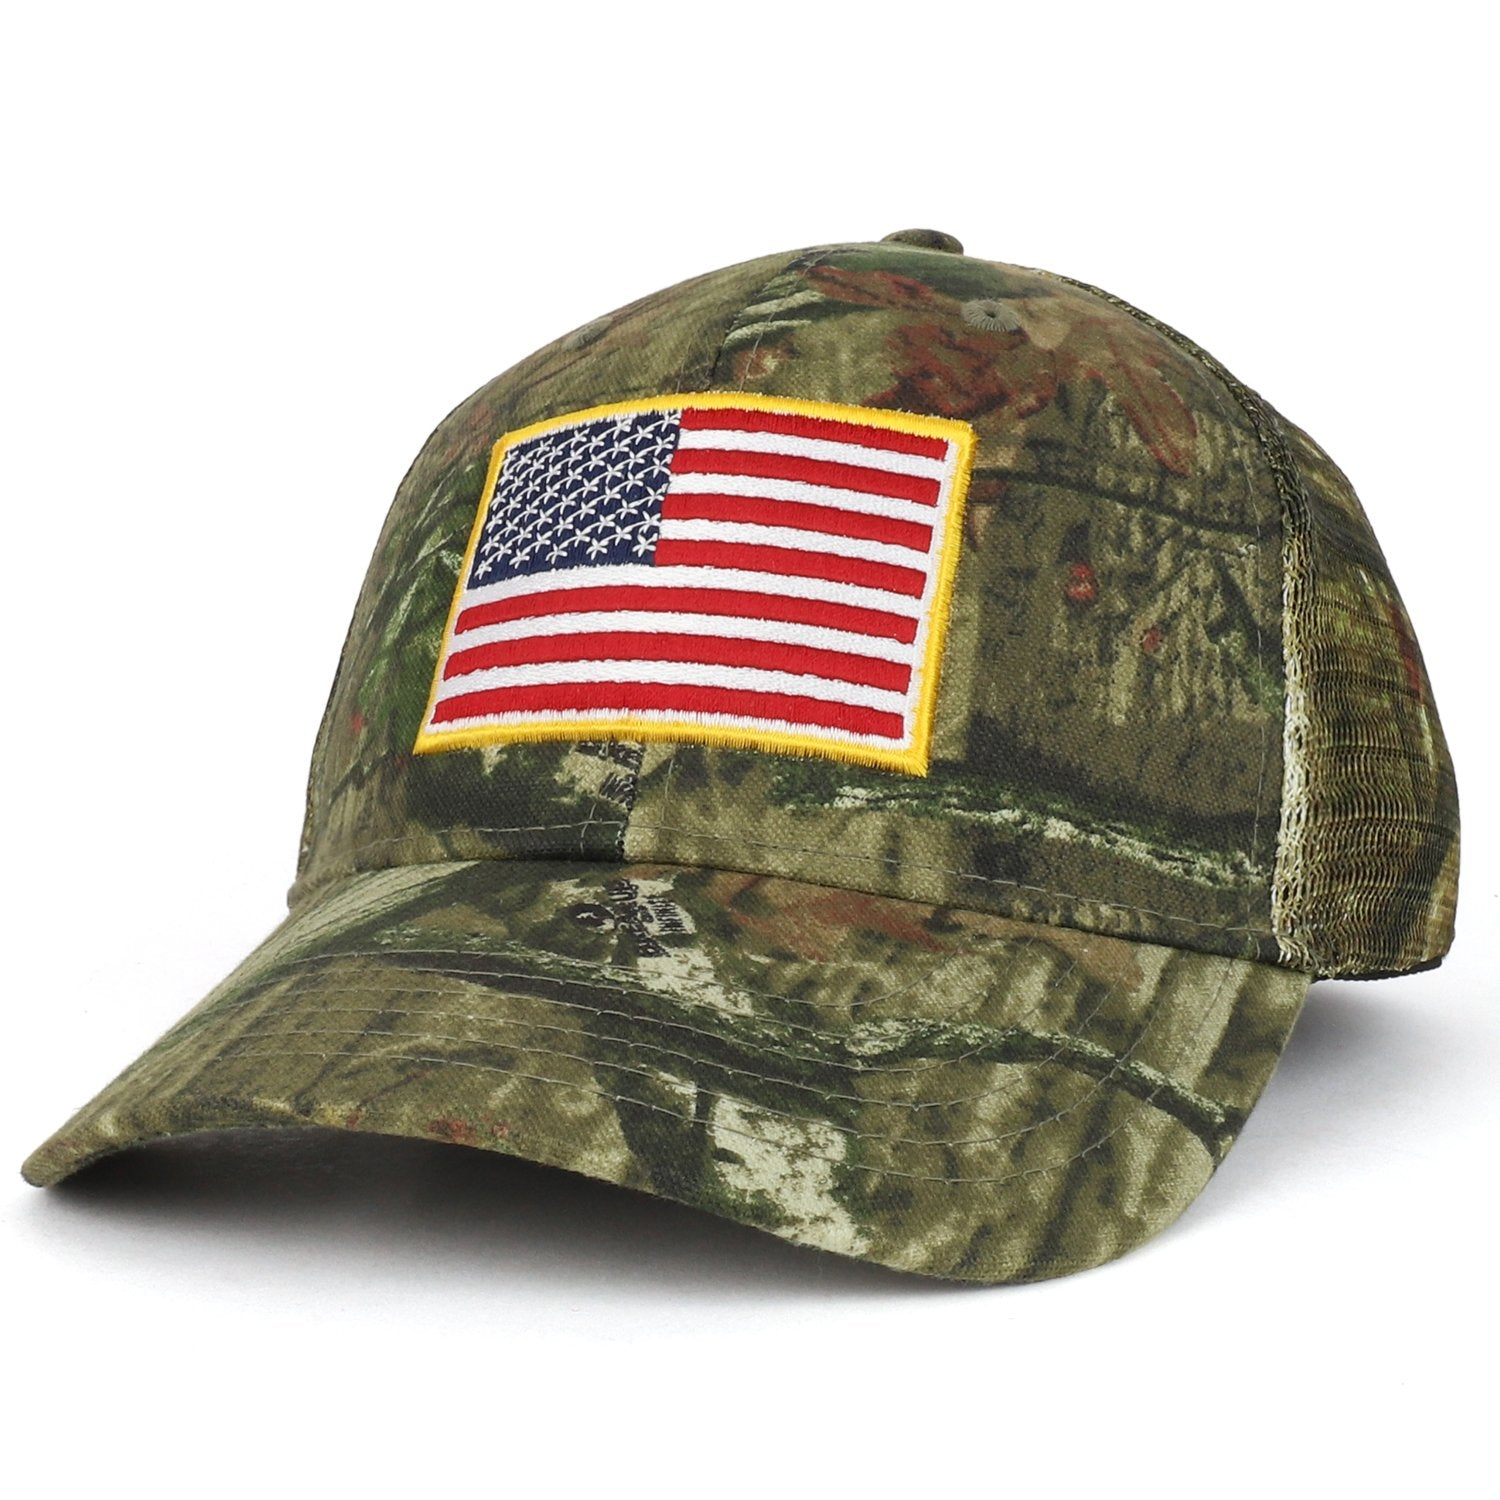 Armycrew USA Flag Patch Embroidered Mossy Oak Break Up Trucker Mesh Cap 89559e134f49